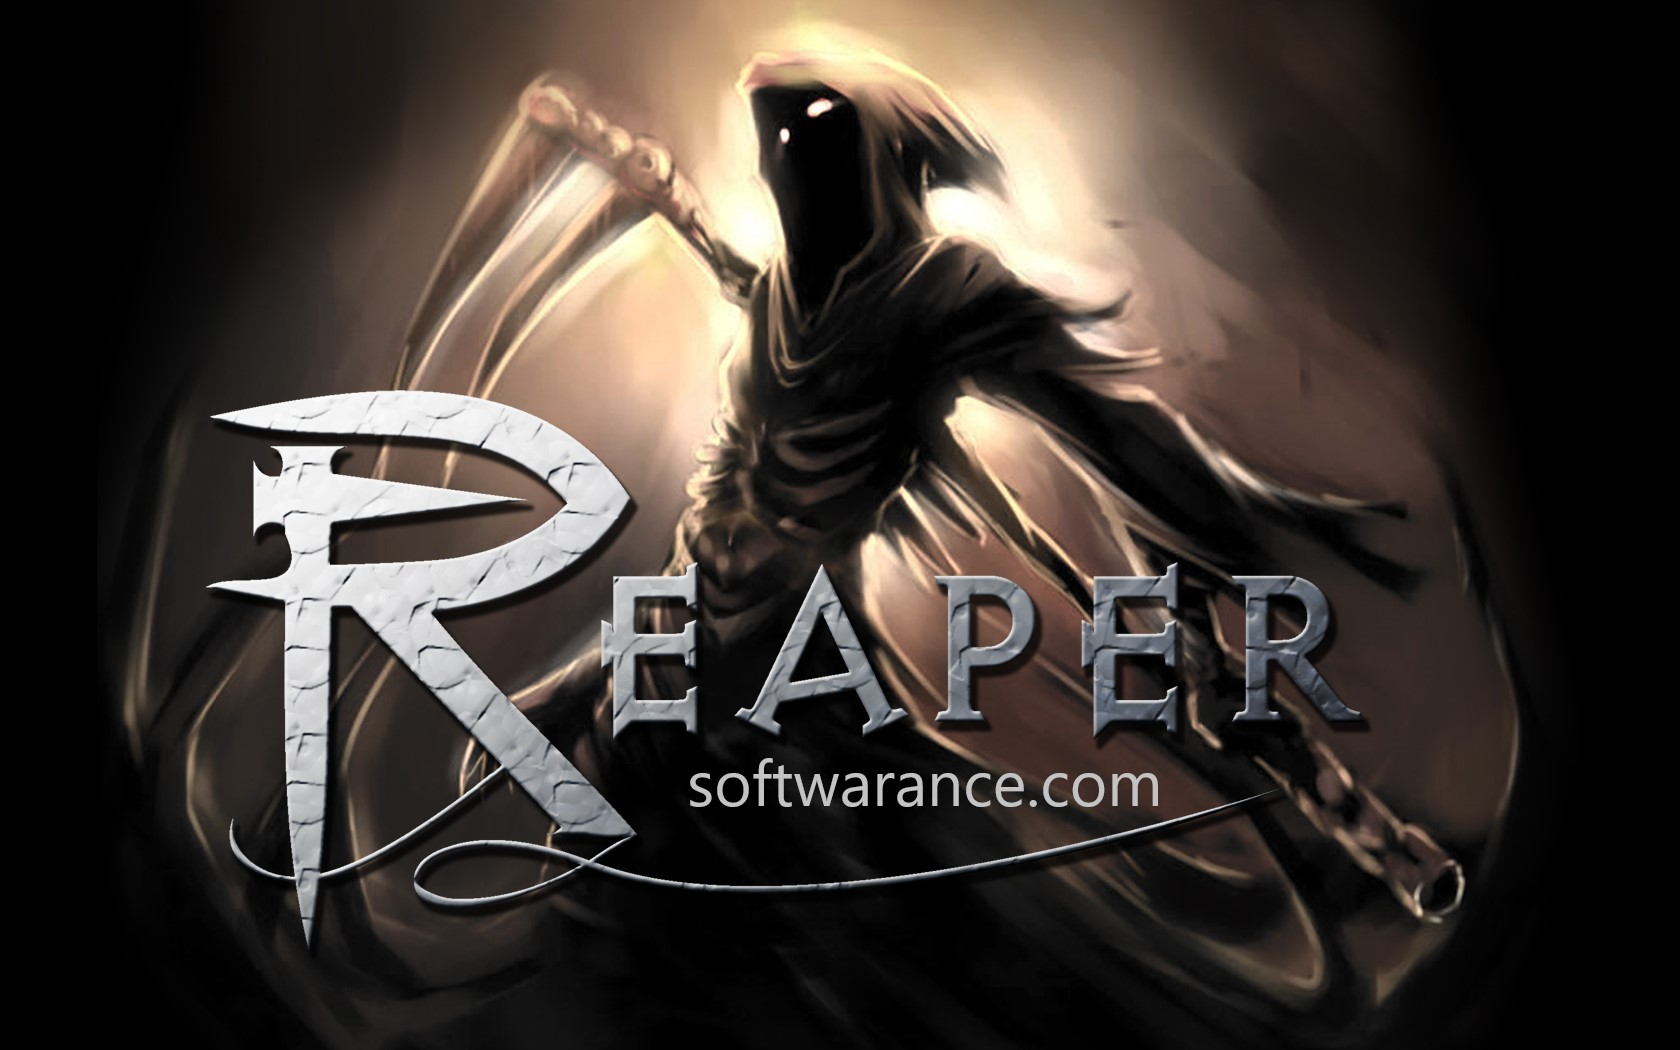 Reaper 6.10 Crack + License Key Full Torrent 2020 Download